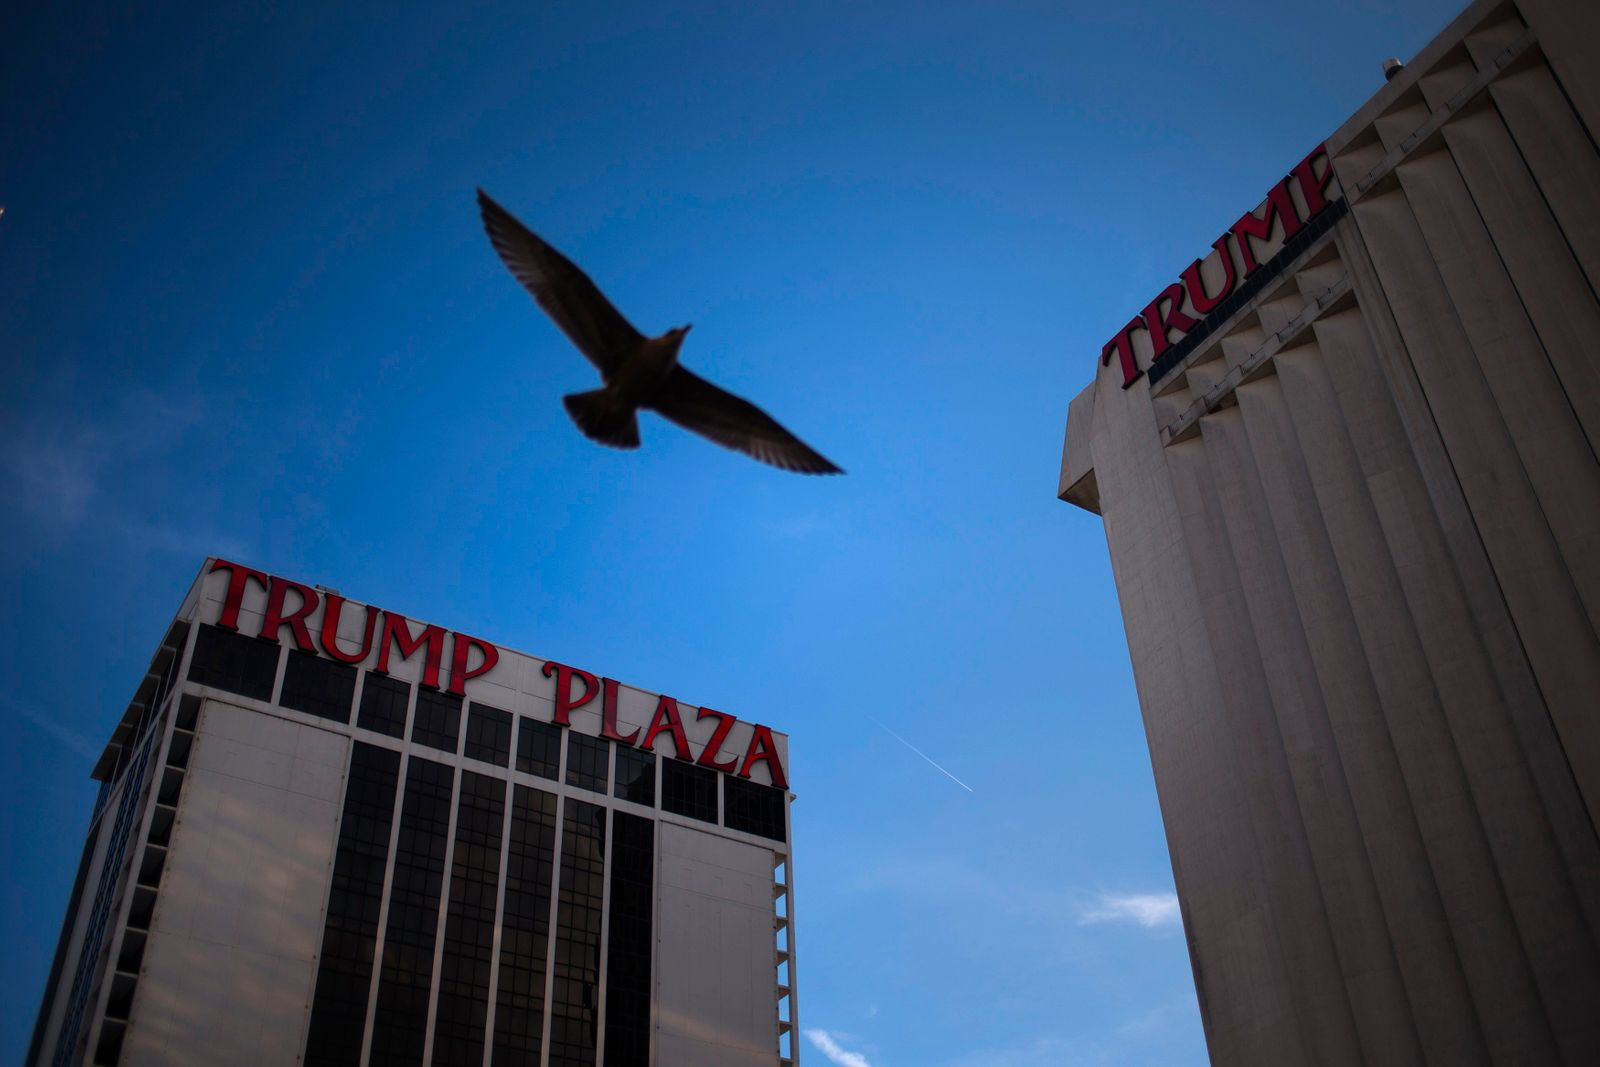 A seagull flies past the Trump Plaza Hotel and Casino, one of two casinos owned by Trump Entertainment Resorts, in Atlantic City, New Jersey